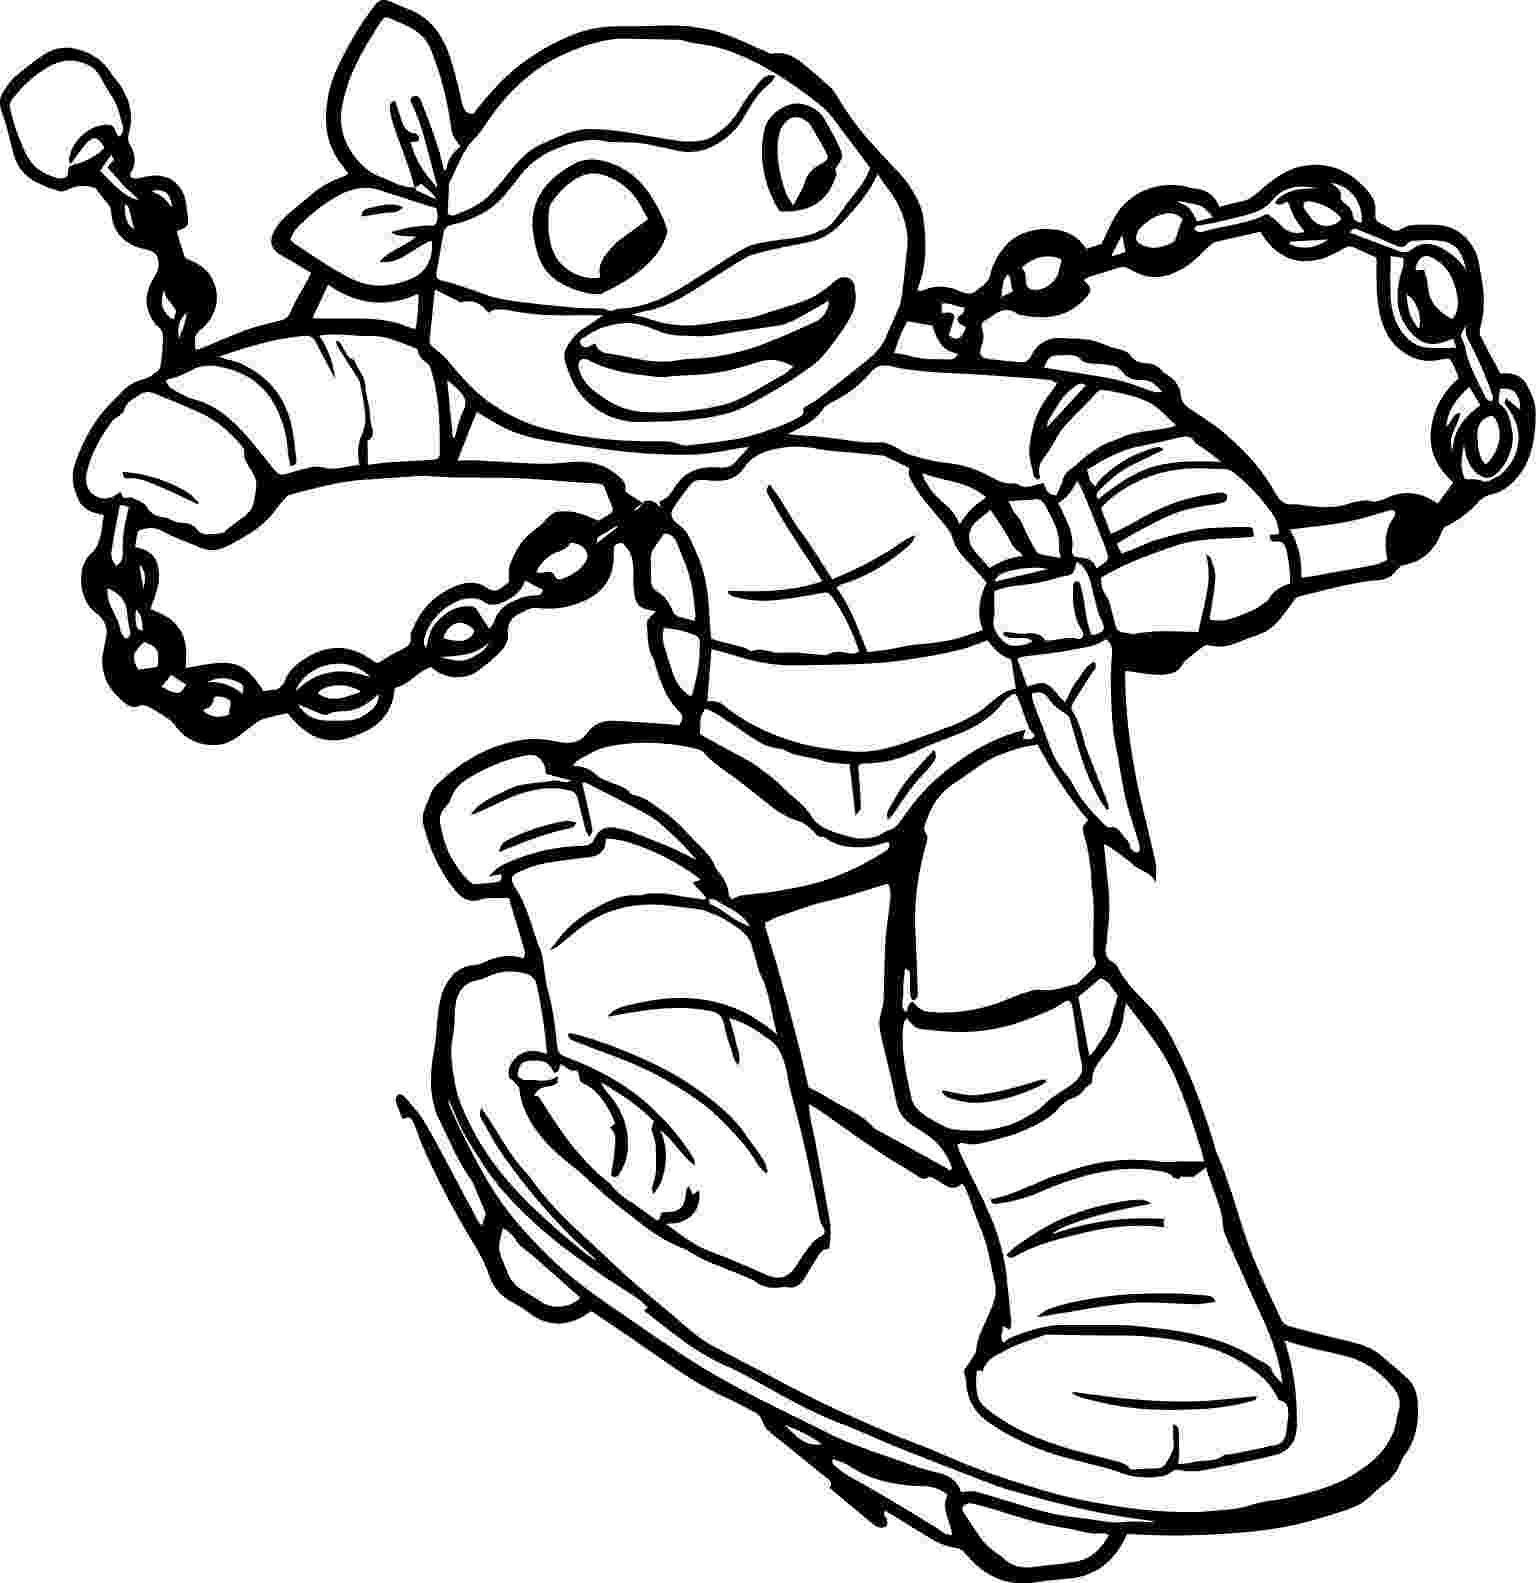 ninja turtle printables teenage mutant ninja turtles coloring pages best printables ninja turtle